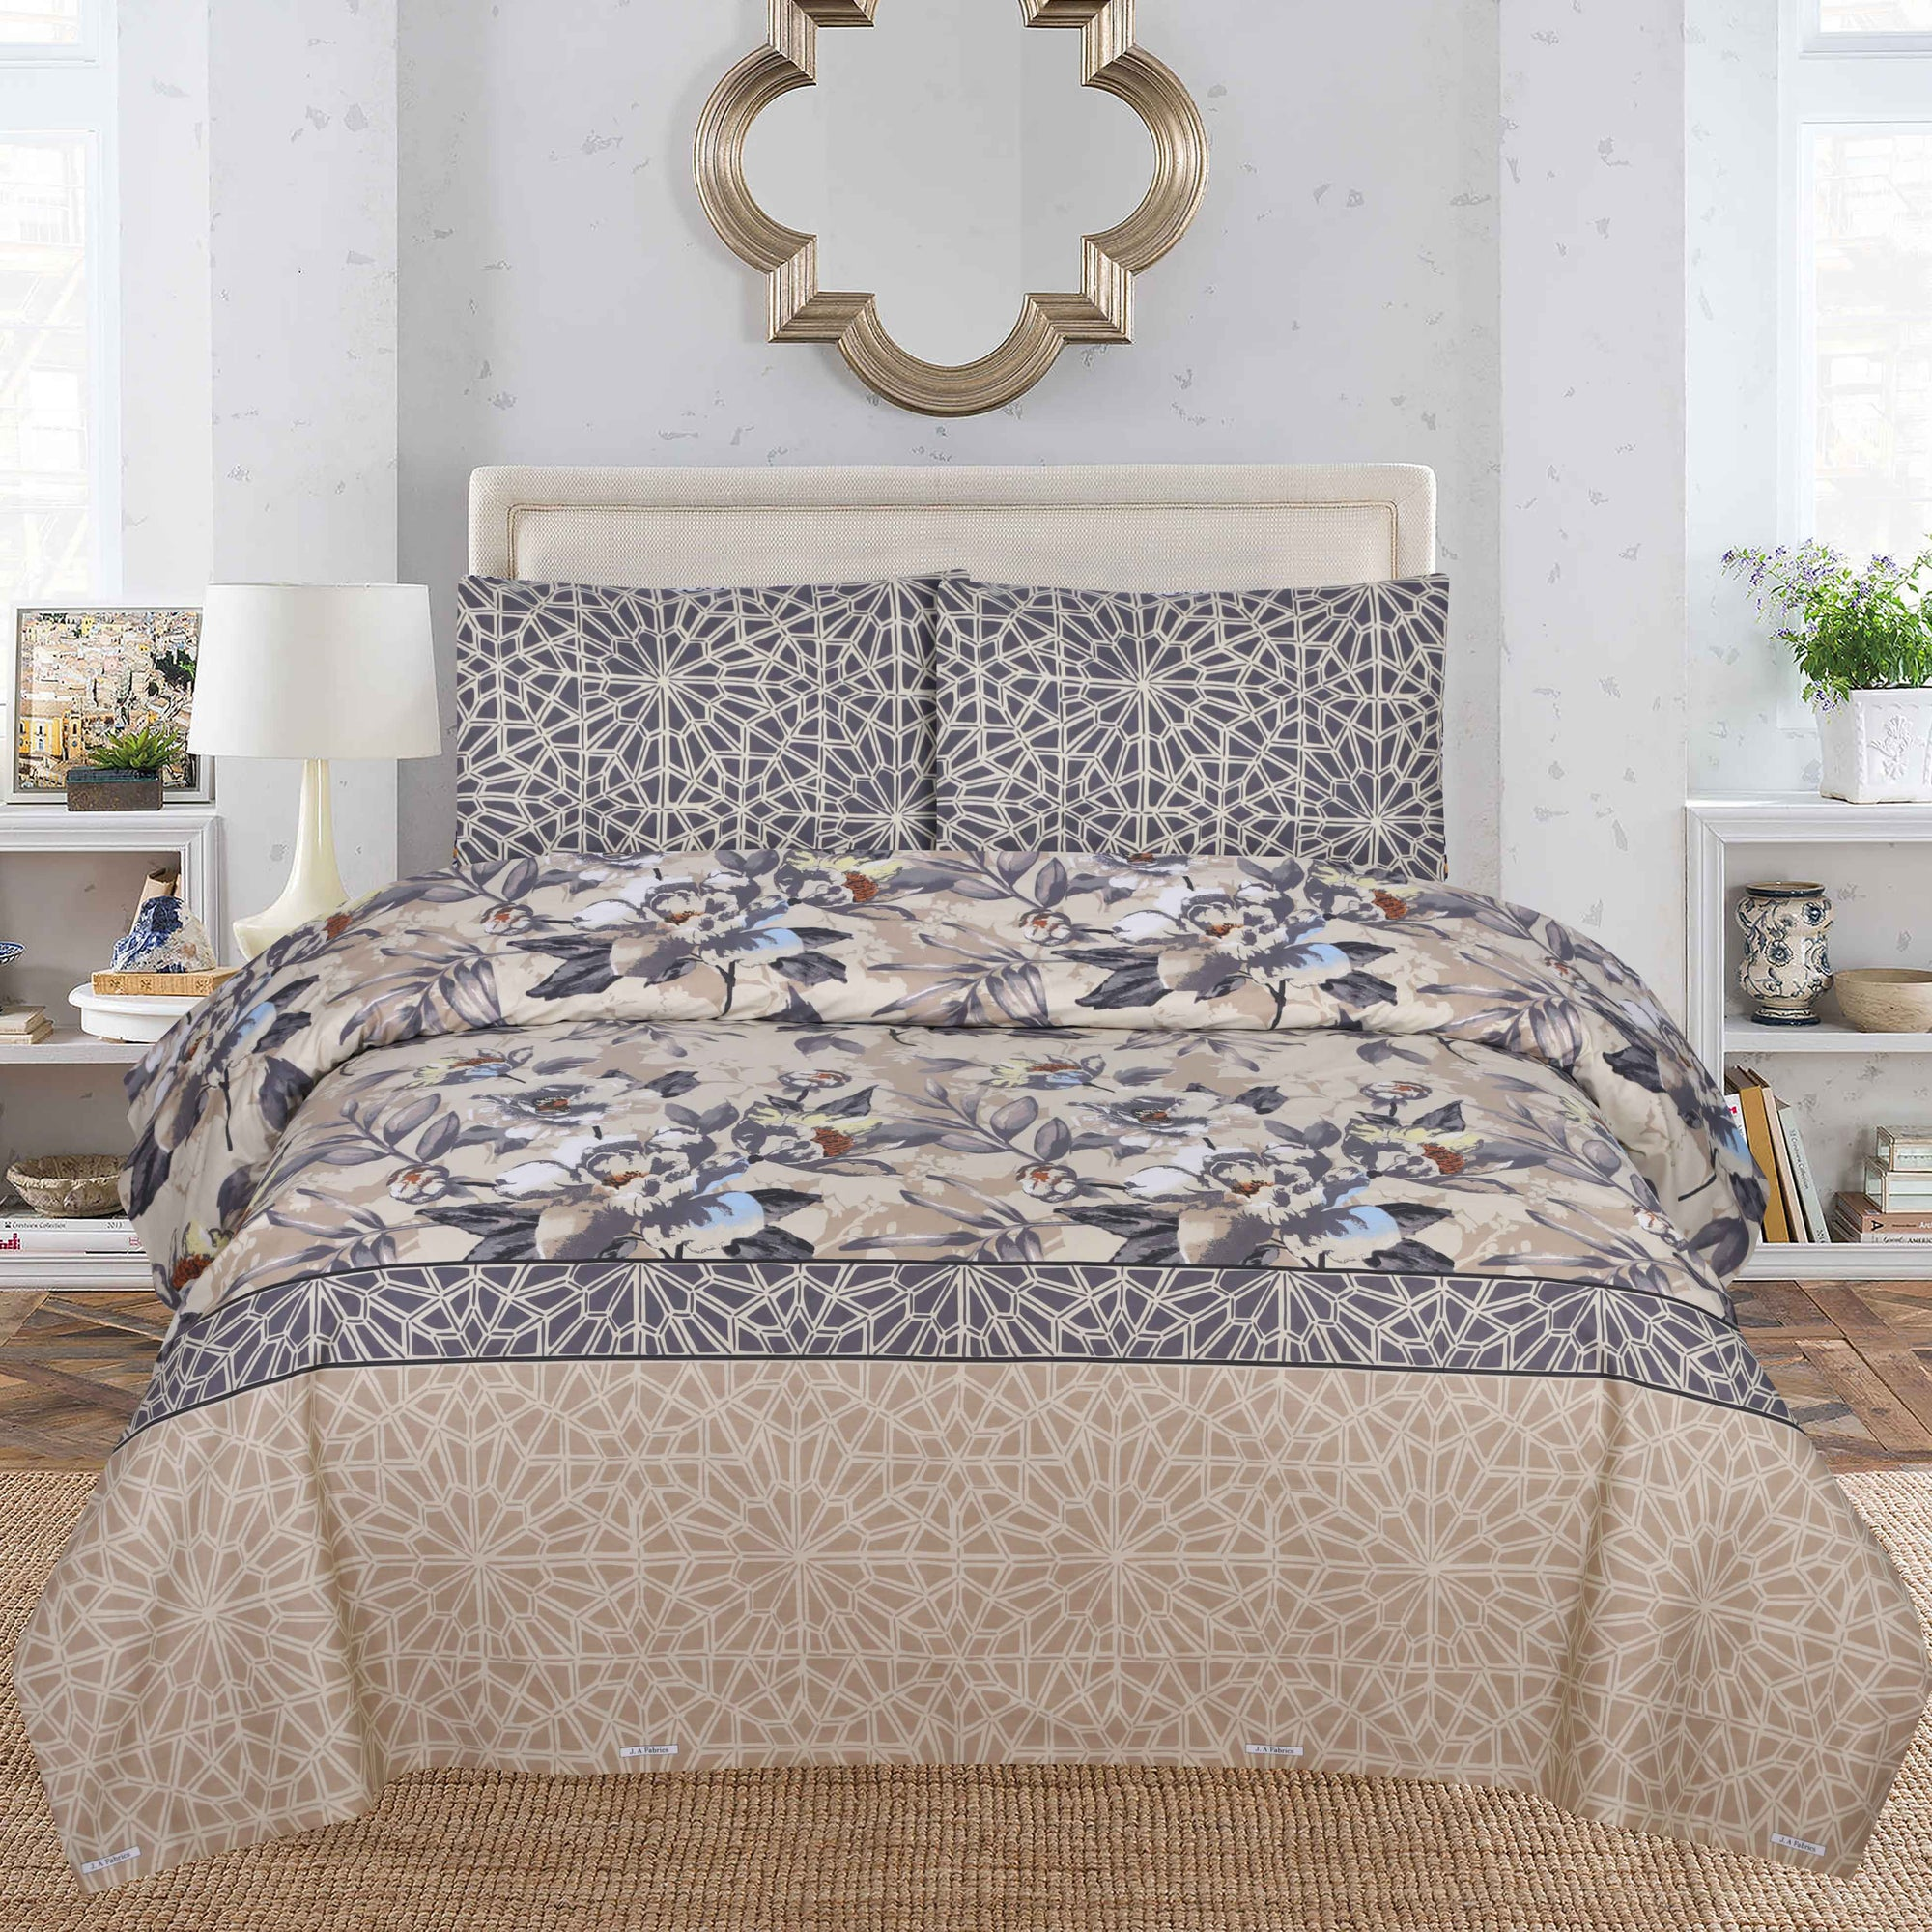 Grace D120 - Cotton PC King Size Bedsheet with 2 Pillow Covers.